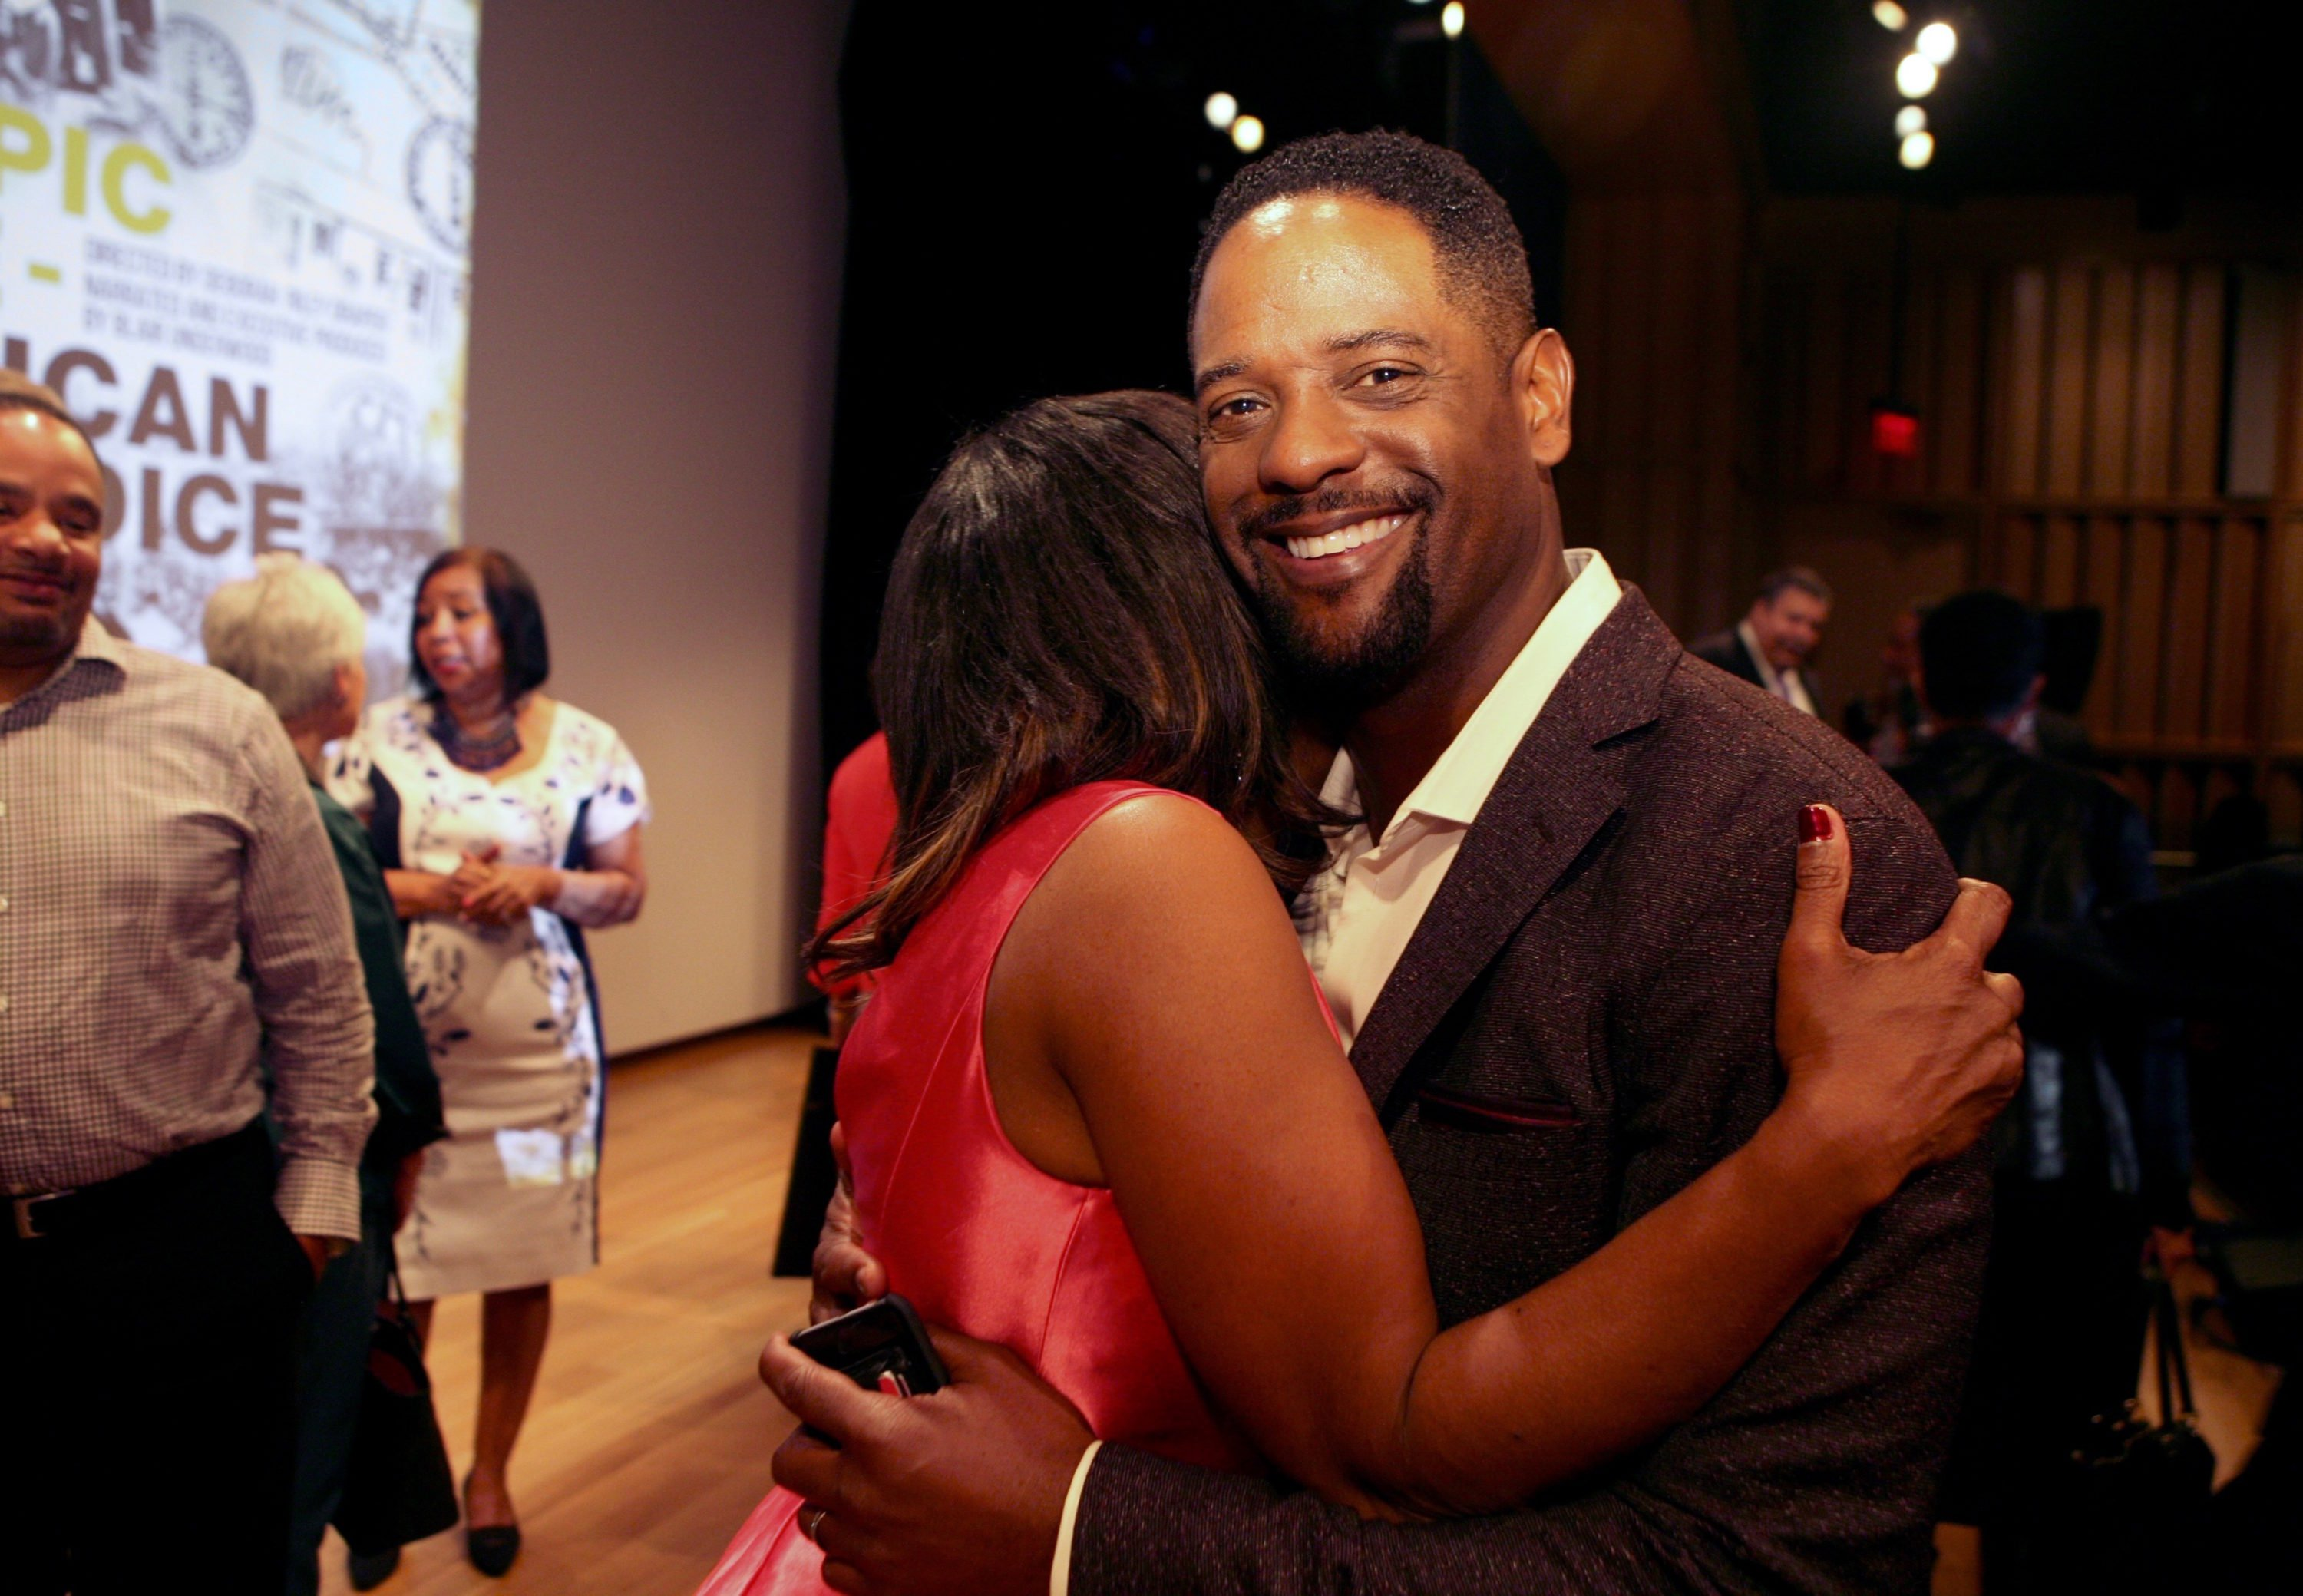 Blair Underwood, Narrator and Executive Producer hugs Director Deborah Riley Draper after the screening.